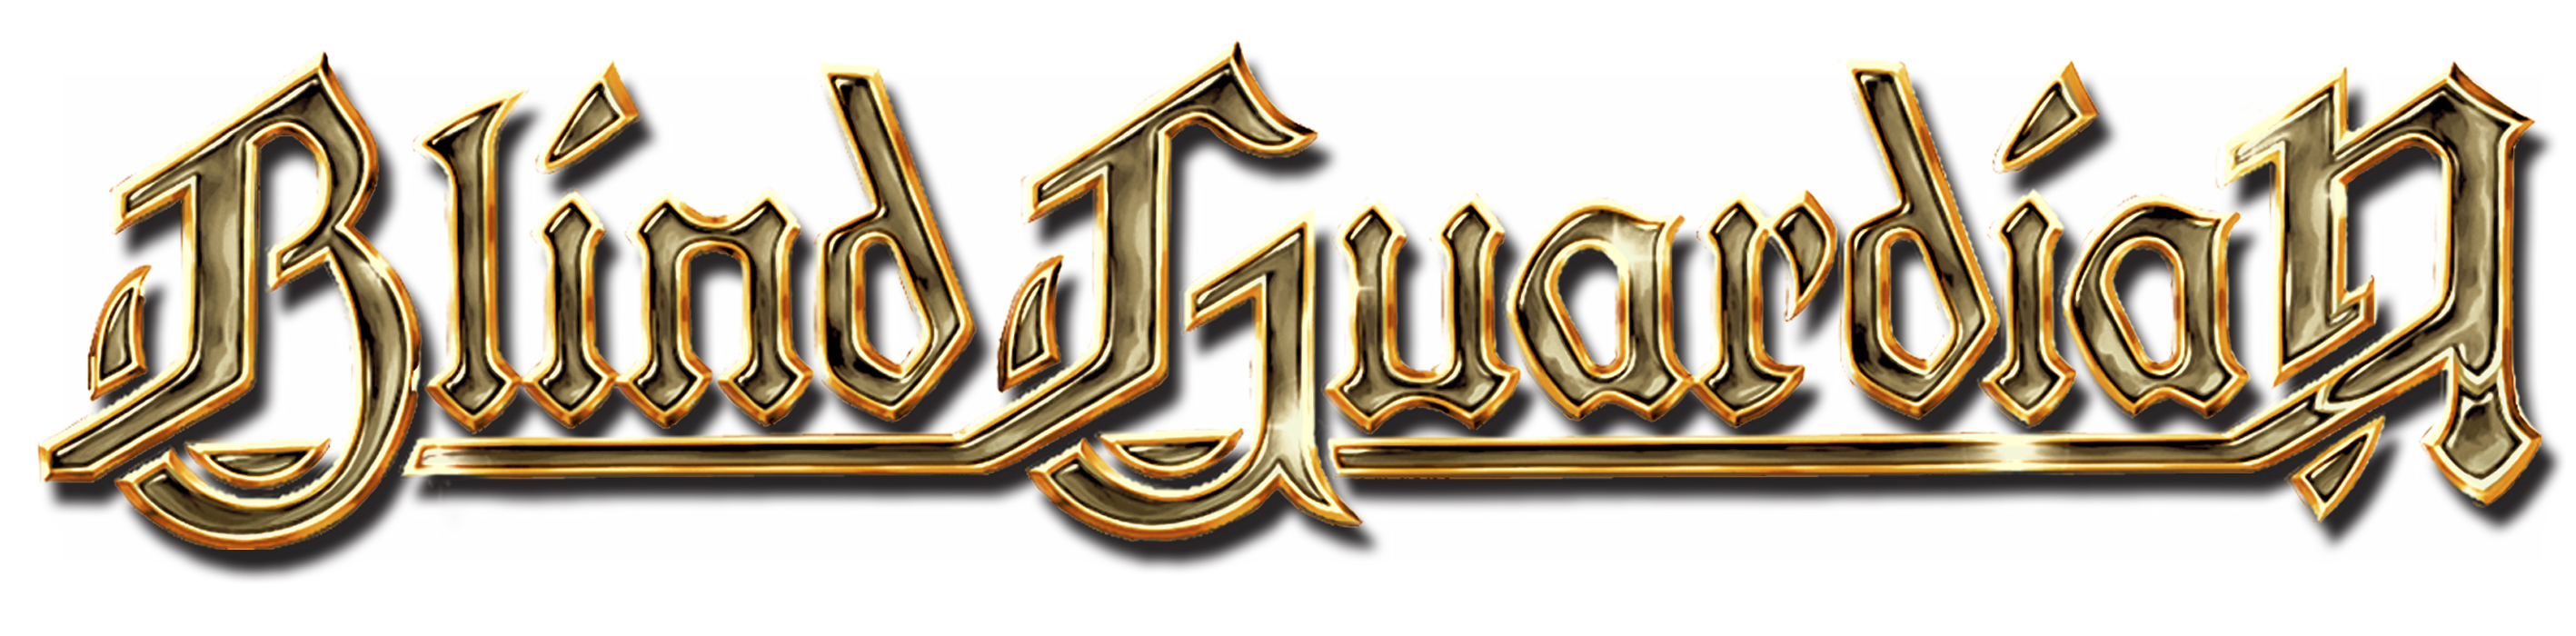 BLIND GUARDIAN Announce re-issues of their complete catalogue from 1988 to 2003